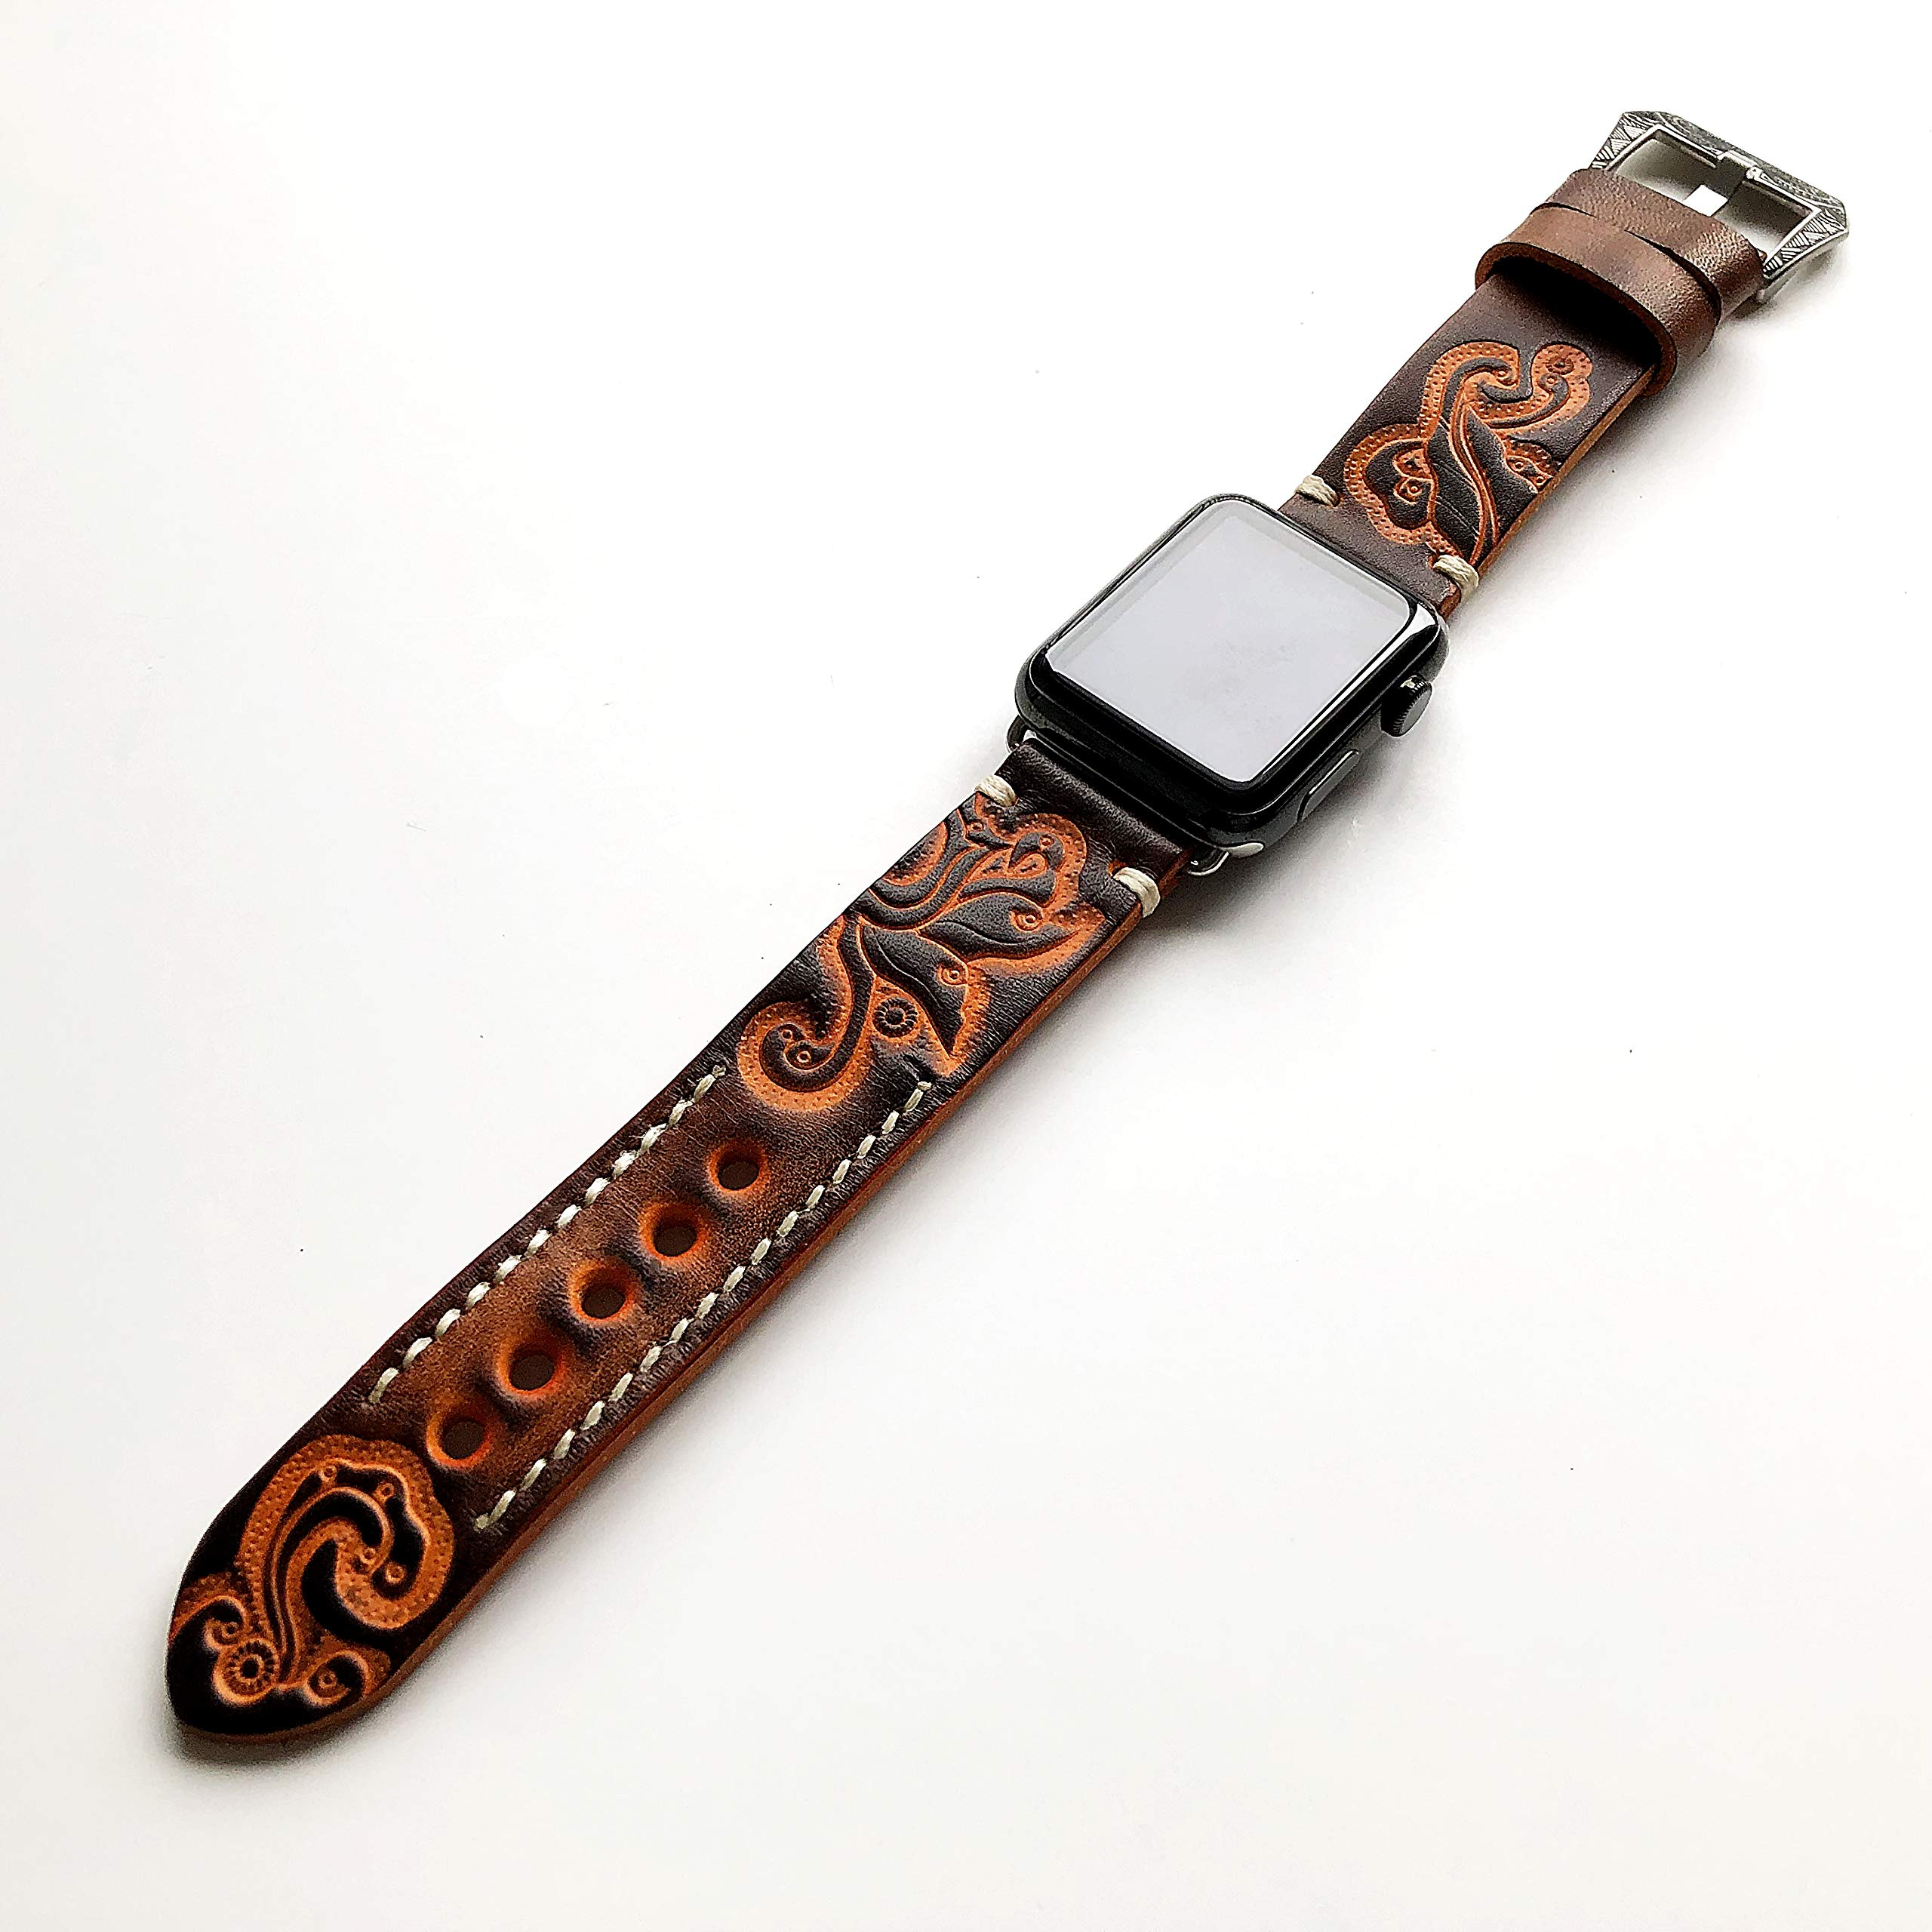 Brown with Orange Tooled Embossed Genuine Leather Band Strap Bracelet with Engraved Buckle for iWatch 38mm Apple Watch 1 2 3 4 Compatible with Nike Hermes Edition with Gift Box by NICKSTON (Image #3)